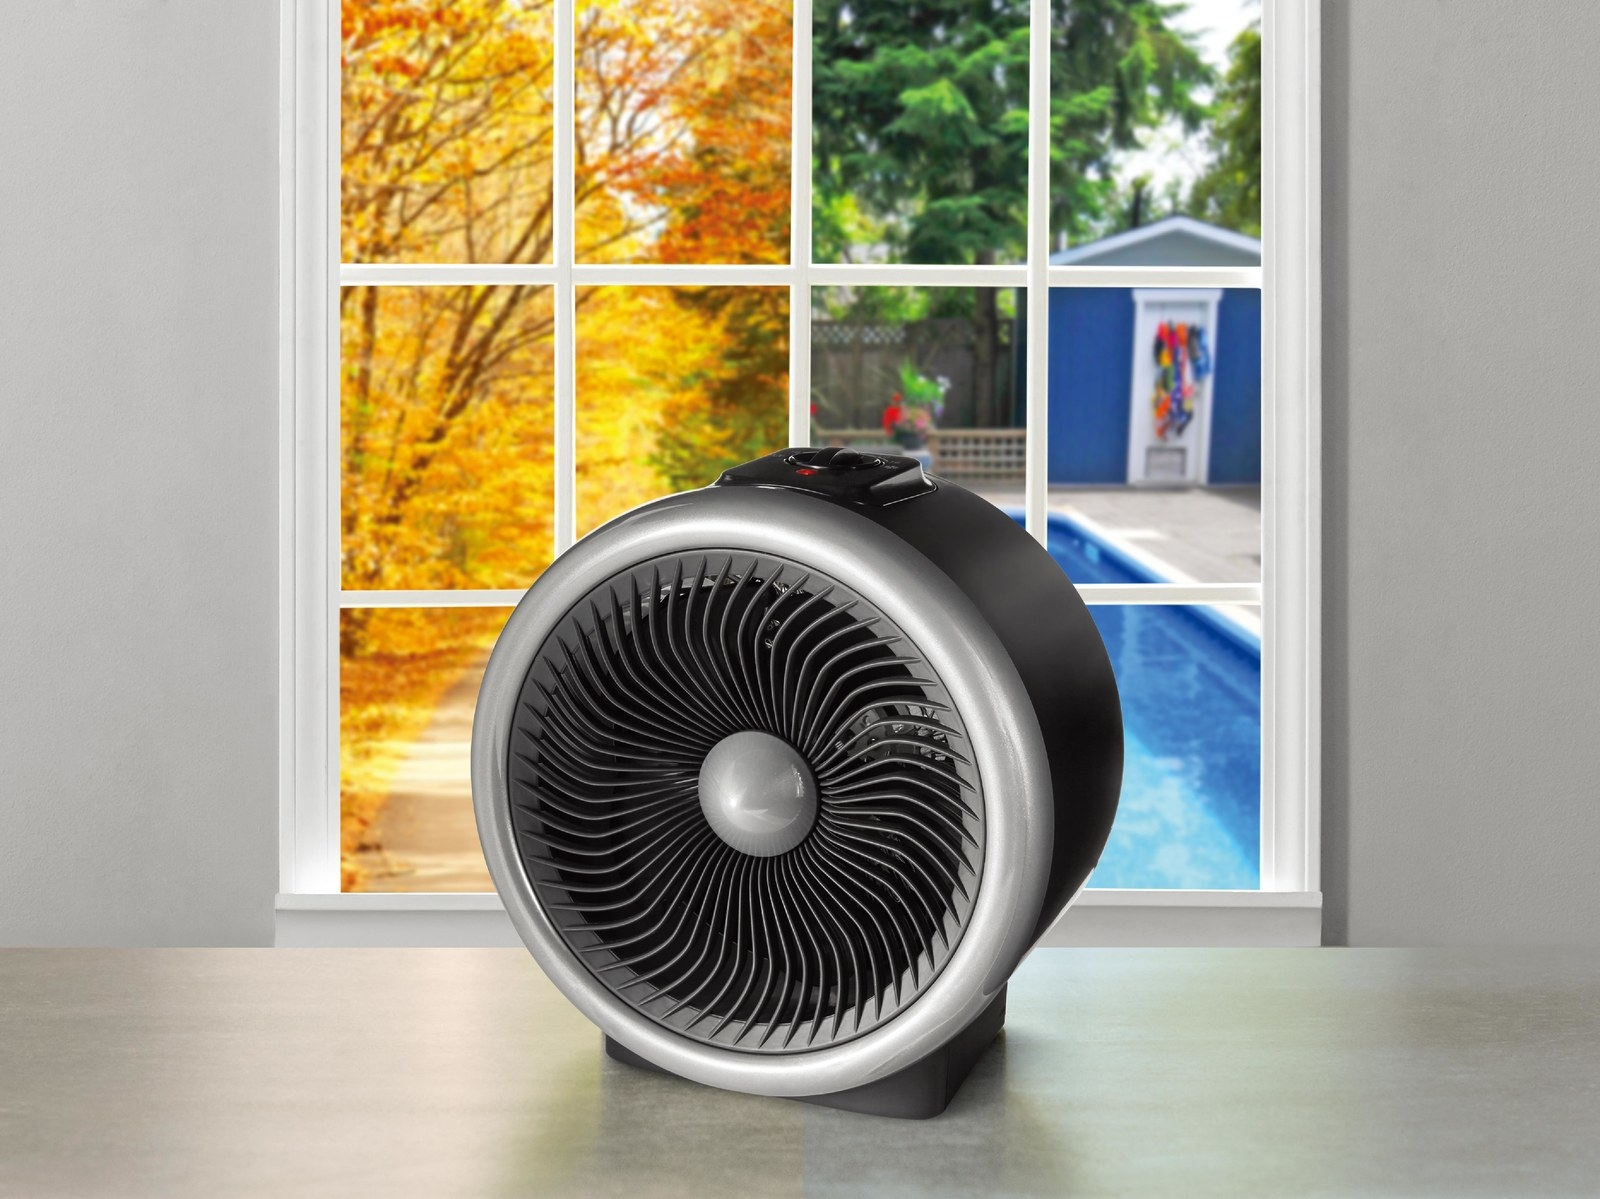 It has two heat settings, two fan settings, and a built-in safety tip-over switch to stop it from overheating. Price: $14.97 ($25.02 off the list price)